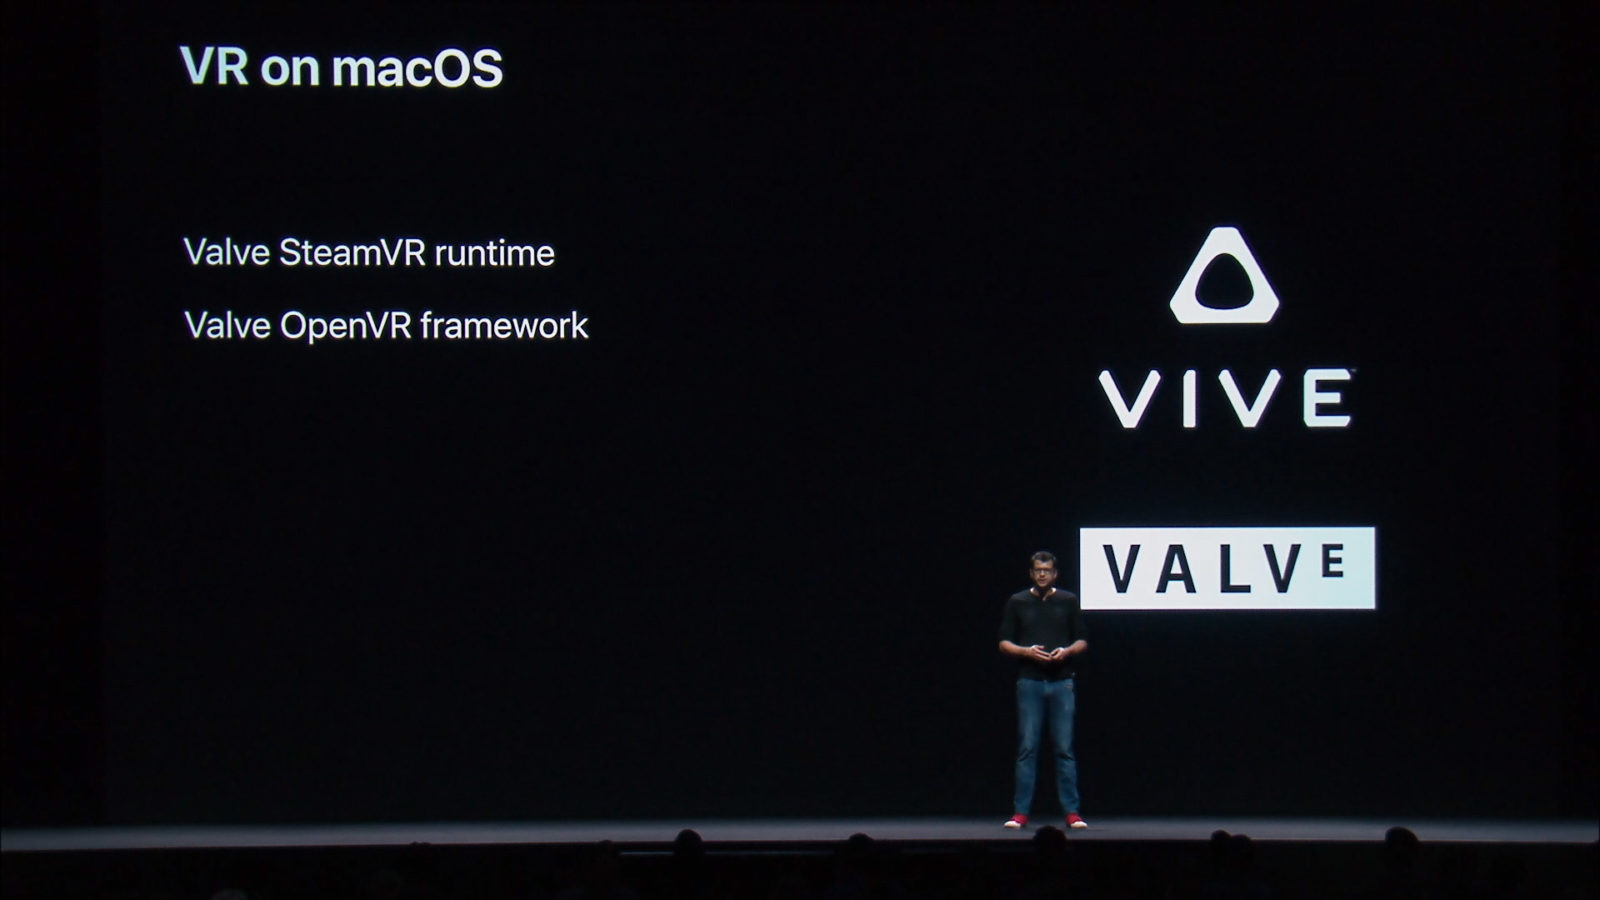 Realtà Virtuale, in macOS Mjova il supporto plug-and-play per il Vive Pro